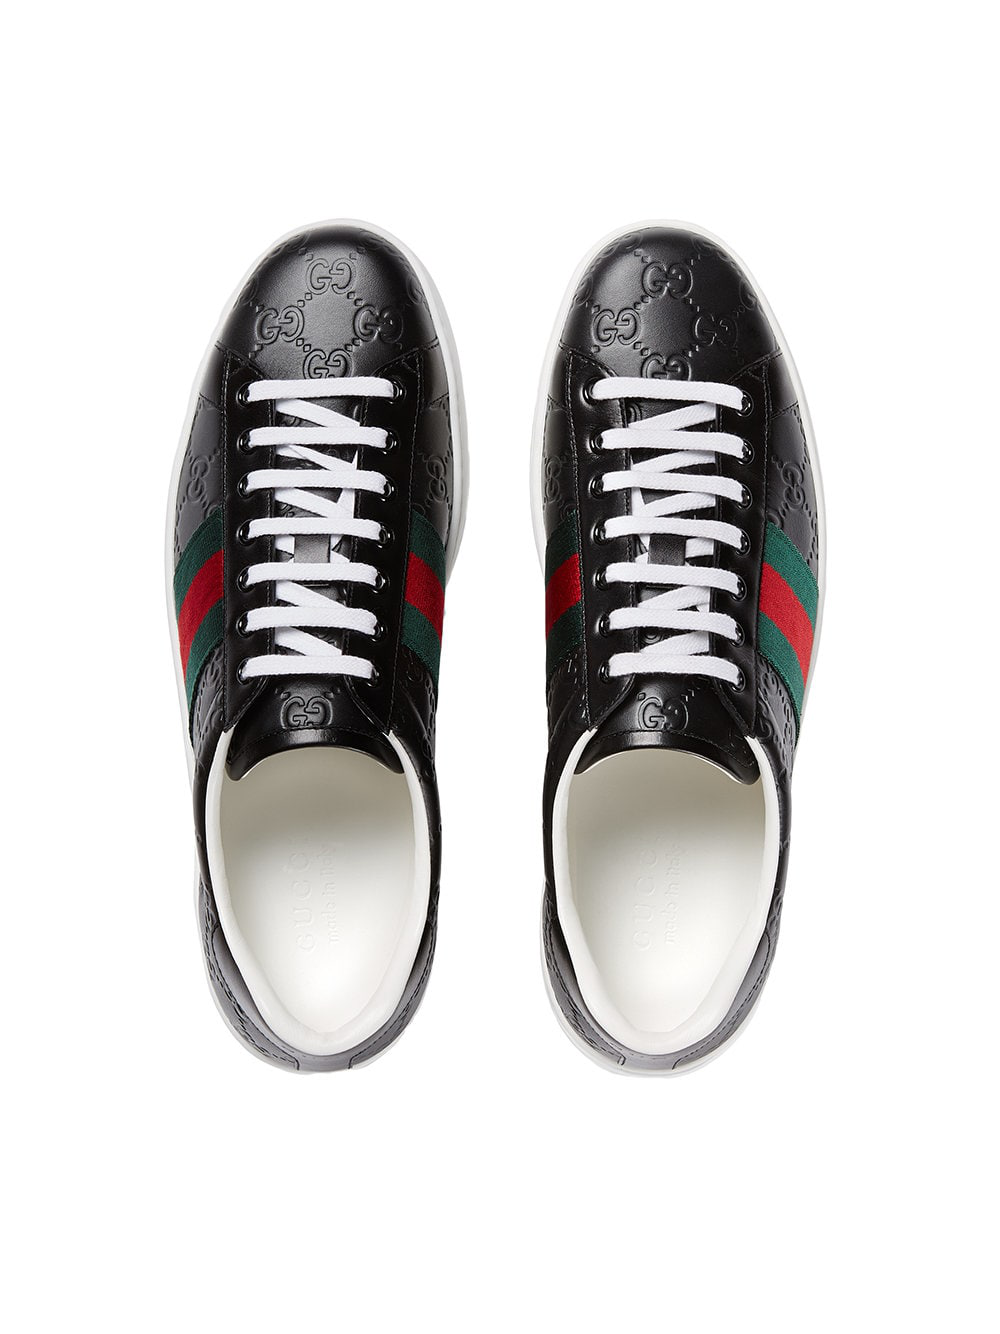 02d544ce99a Gucci Men s Shoes Leather Trainers Sneakers Signature In Black ...